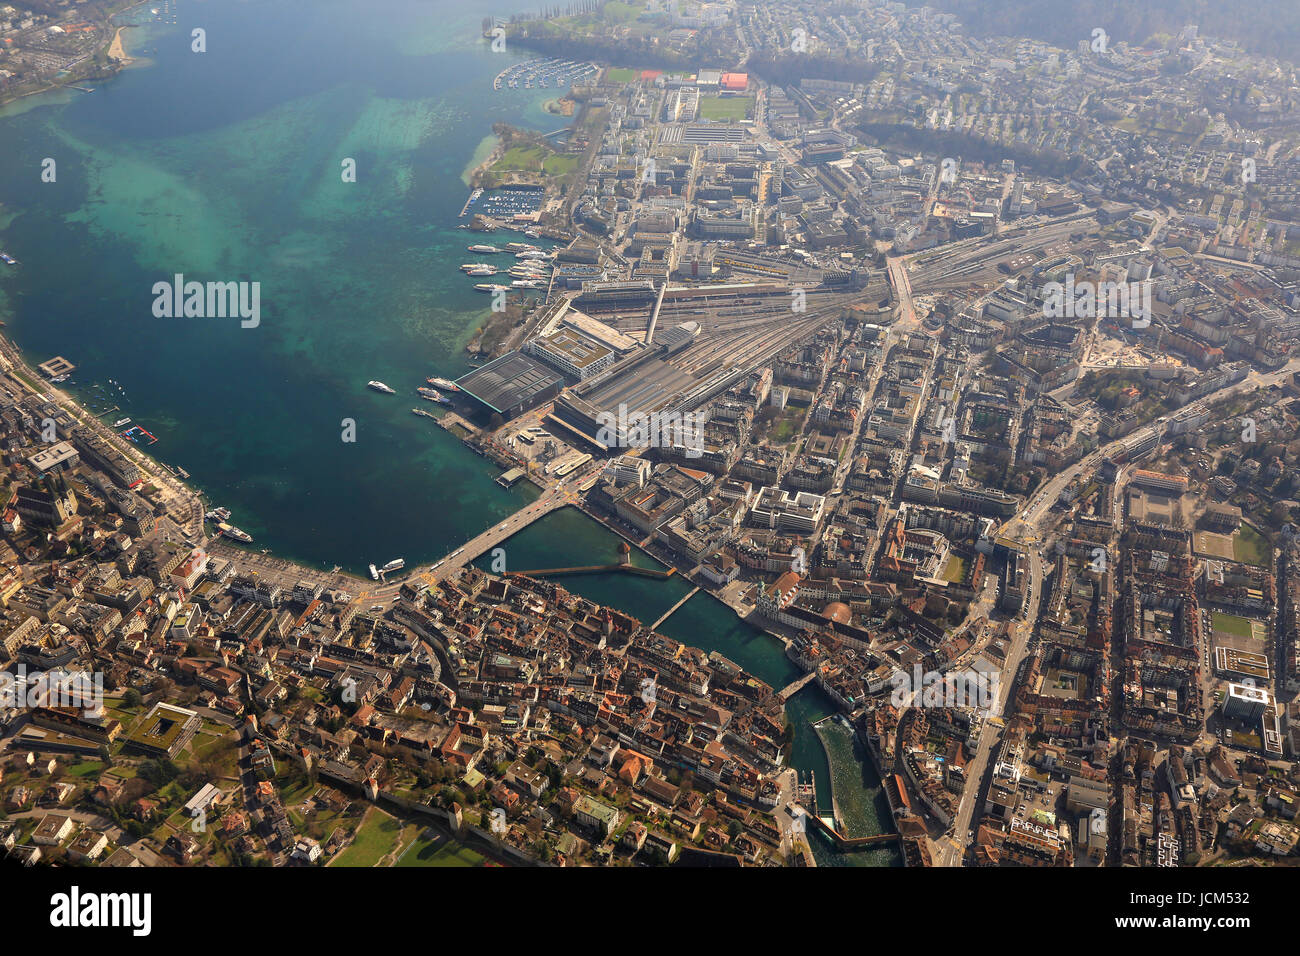 Lucerne main station Luzern Switzerland town City aerial view photography photo - Stock Image